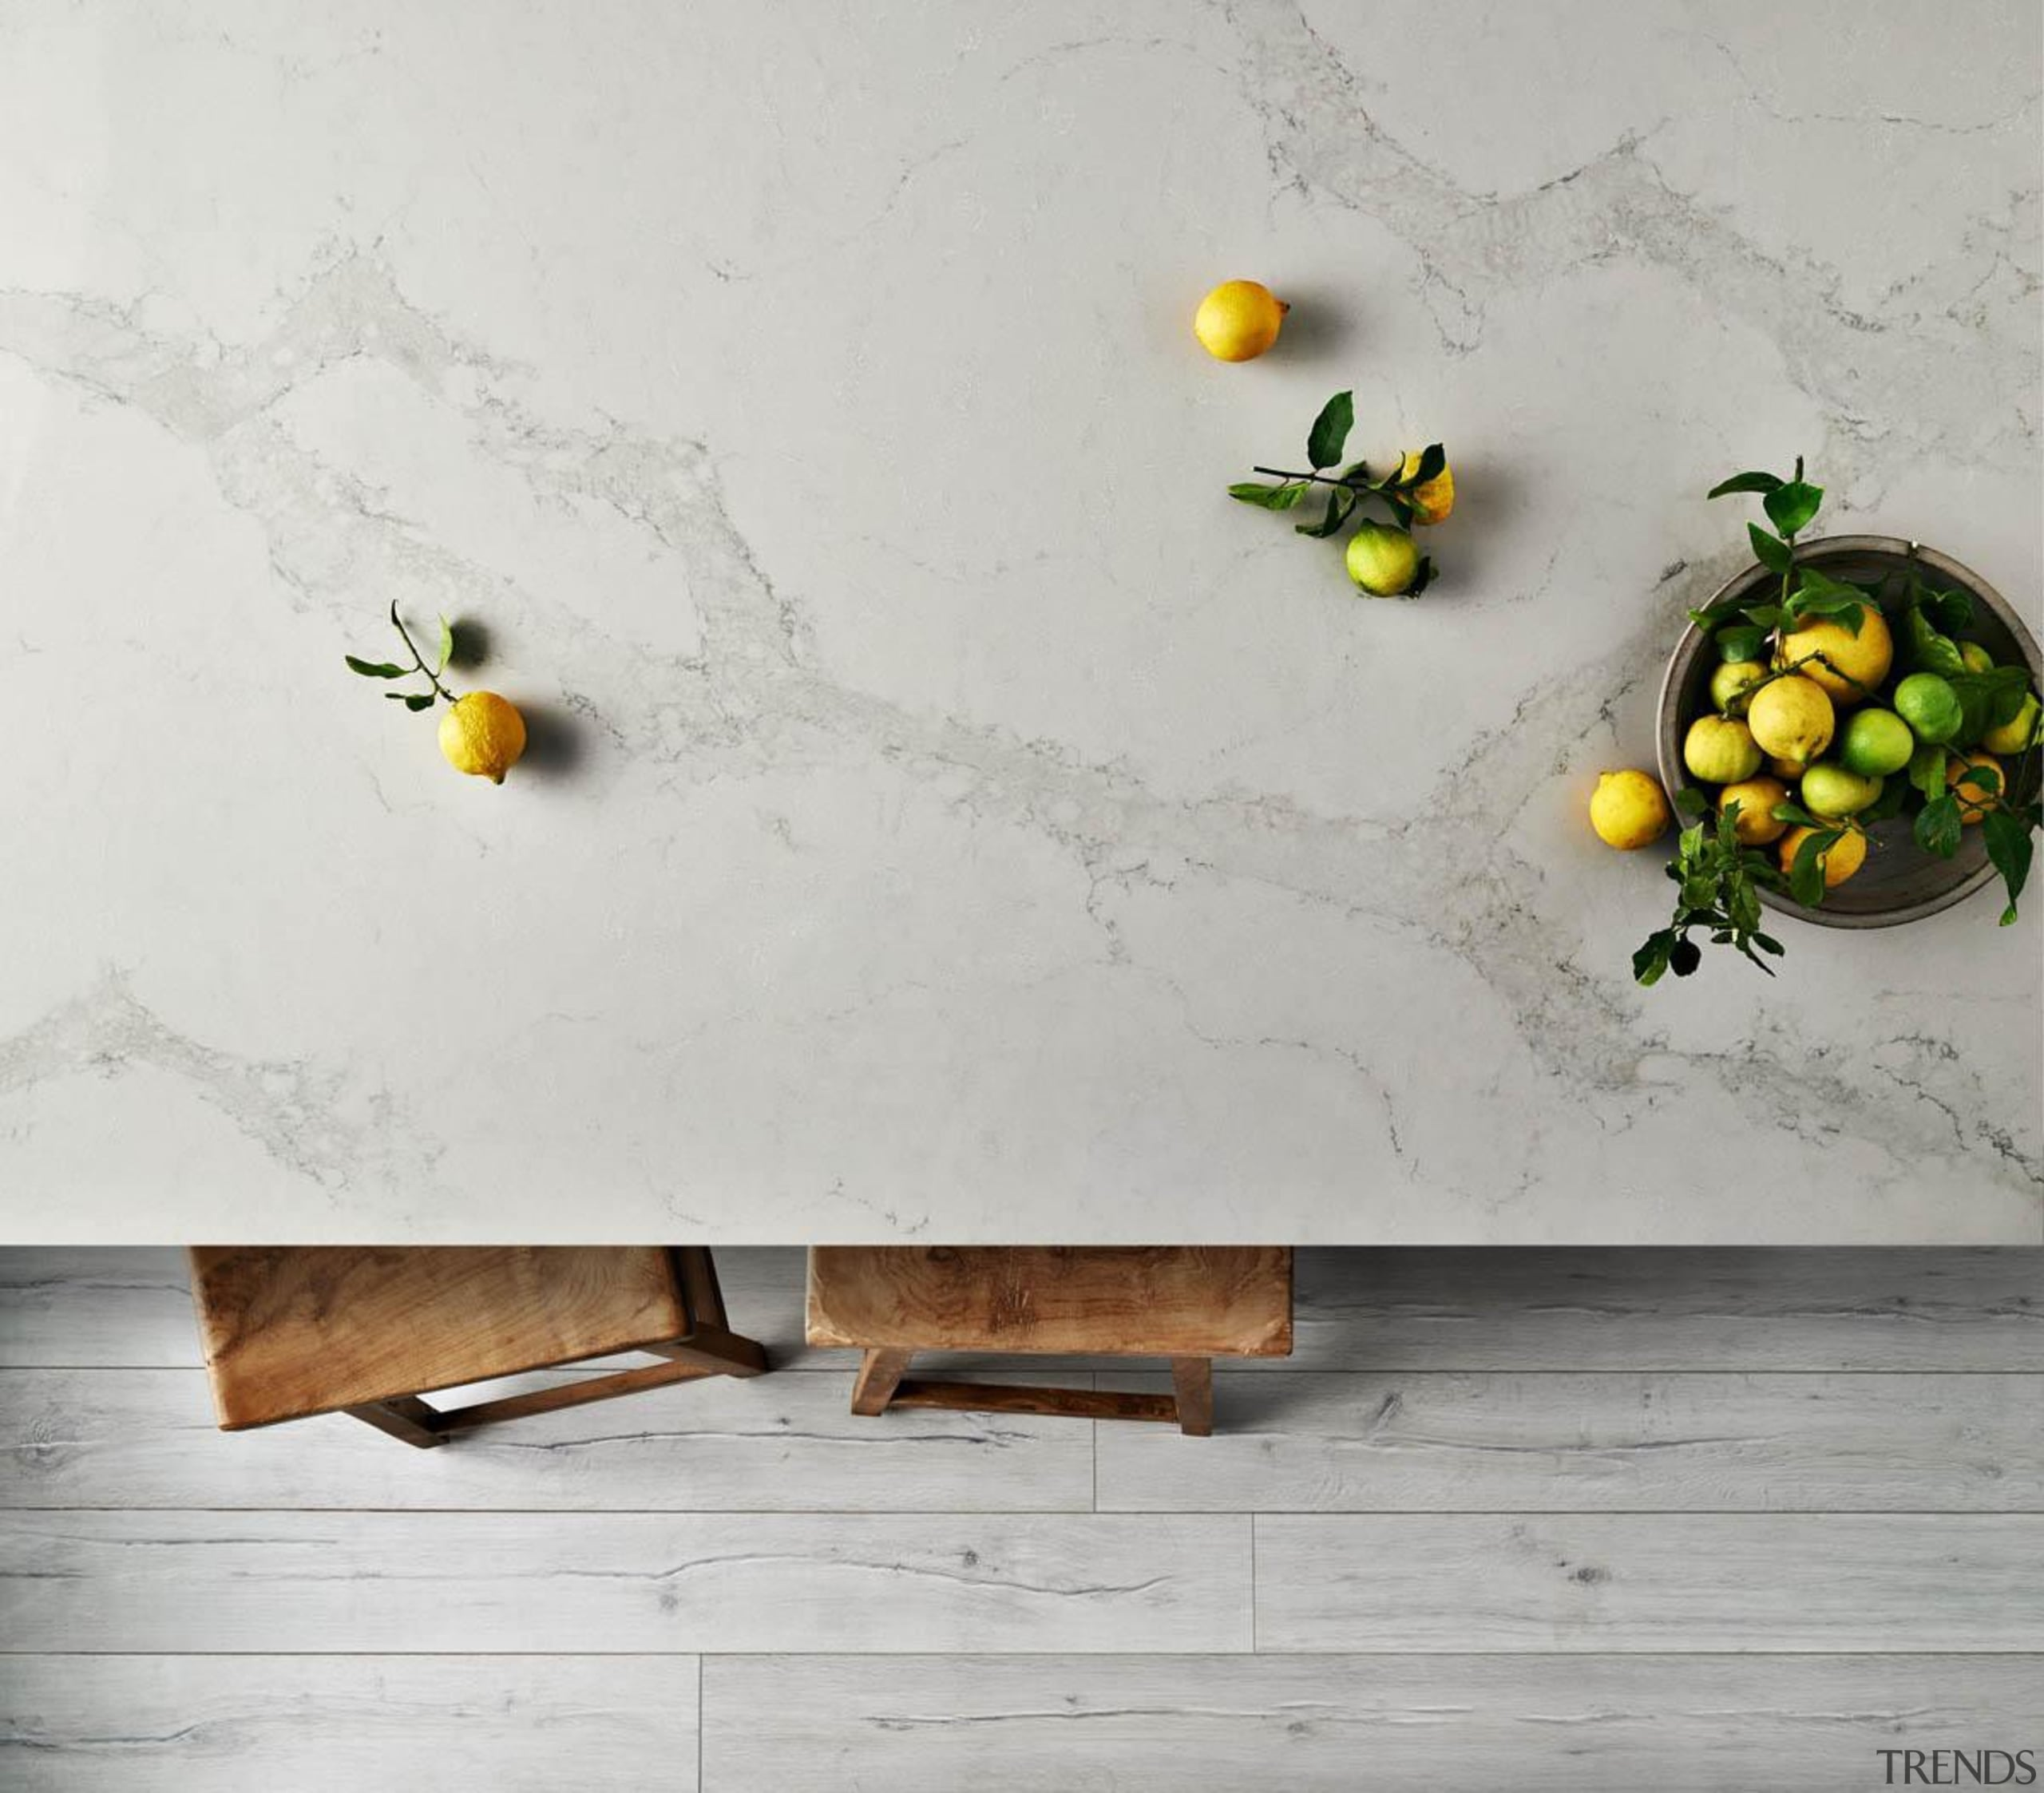 calacatta nuvo smal.jpg - calacatta_nuvo_smal.jpg - furniture   furniture, product design, still life photography, table, wall, yellow, gray